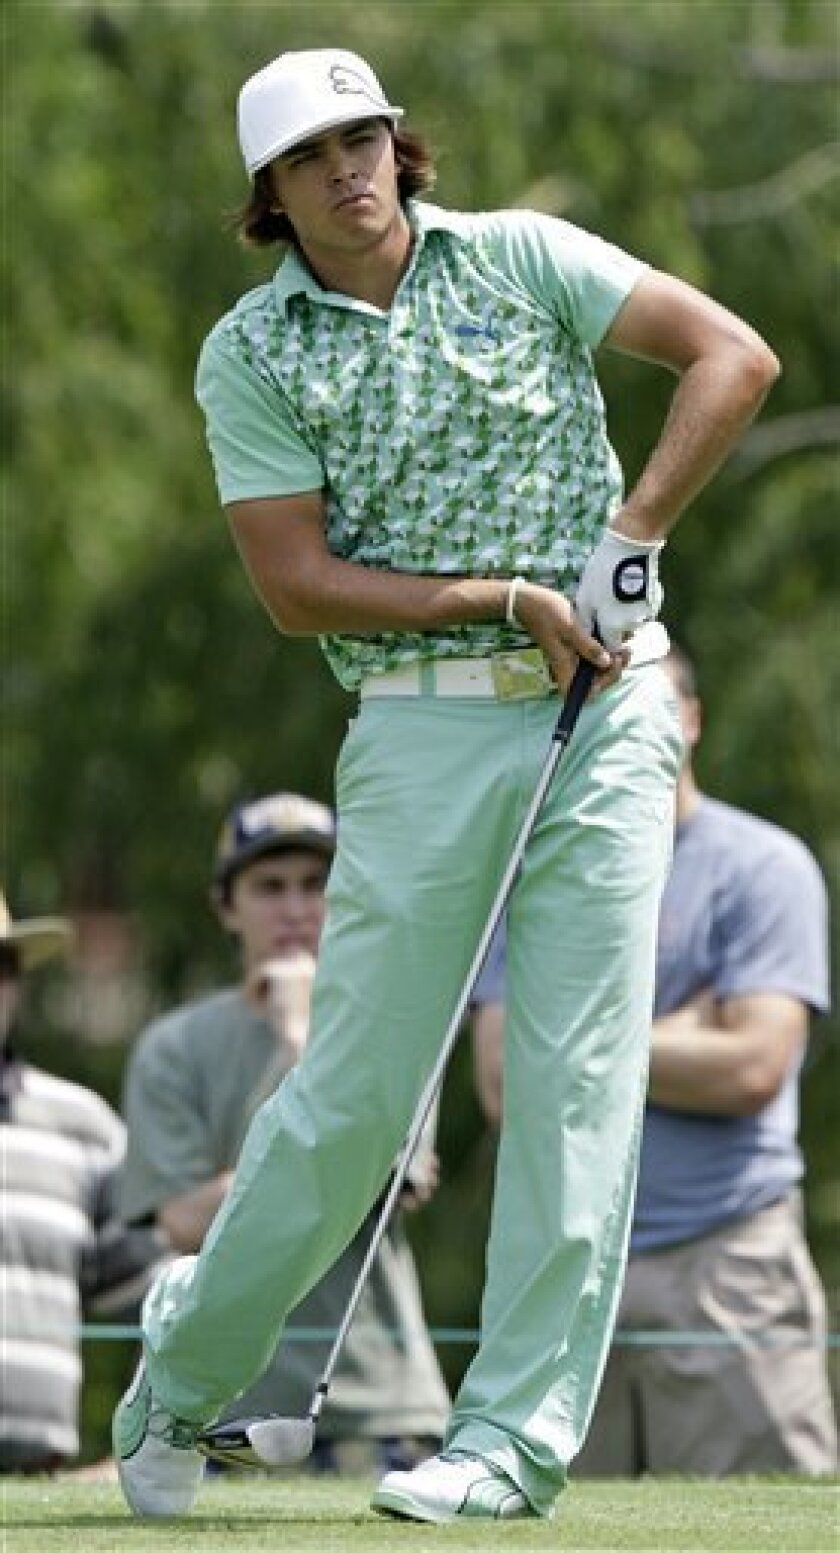 Rickie Fowler watches his tee shot on the par-4 ninth hole during the second round of The Memorial golf tournament at Muirfield Village Golf Club Friday, June 4, 2010, in Dublin, Ohio. Fowler parred the hole. (AP Photo/Jay LaPrete)